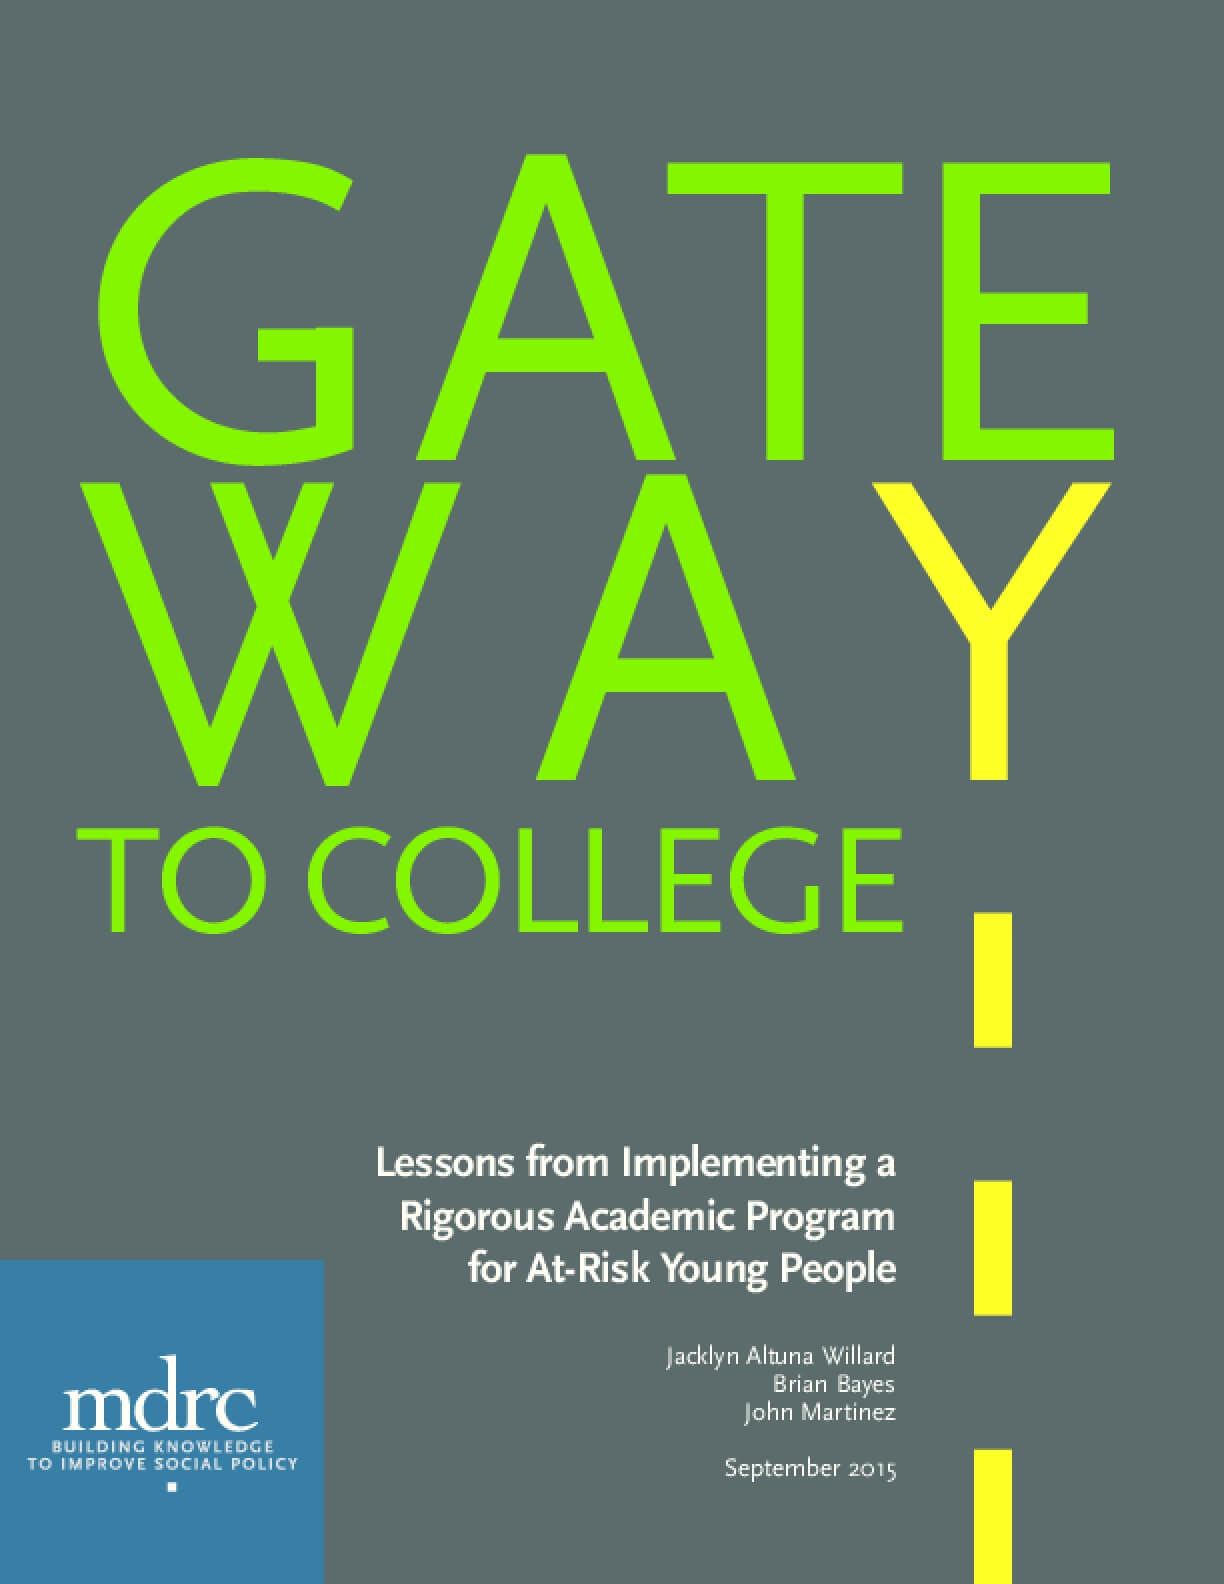 Gateway to College: Lessons from Implementing a Rigorous Academic Program for At-Risk Young People